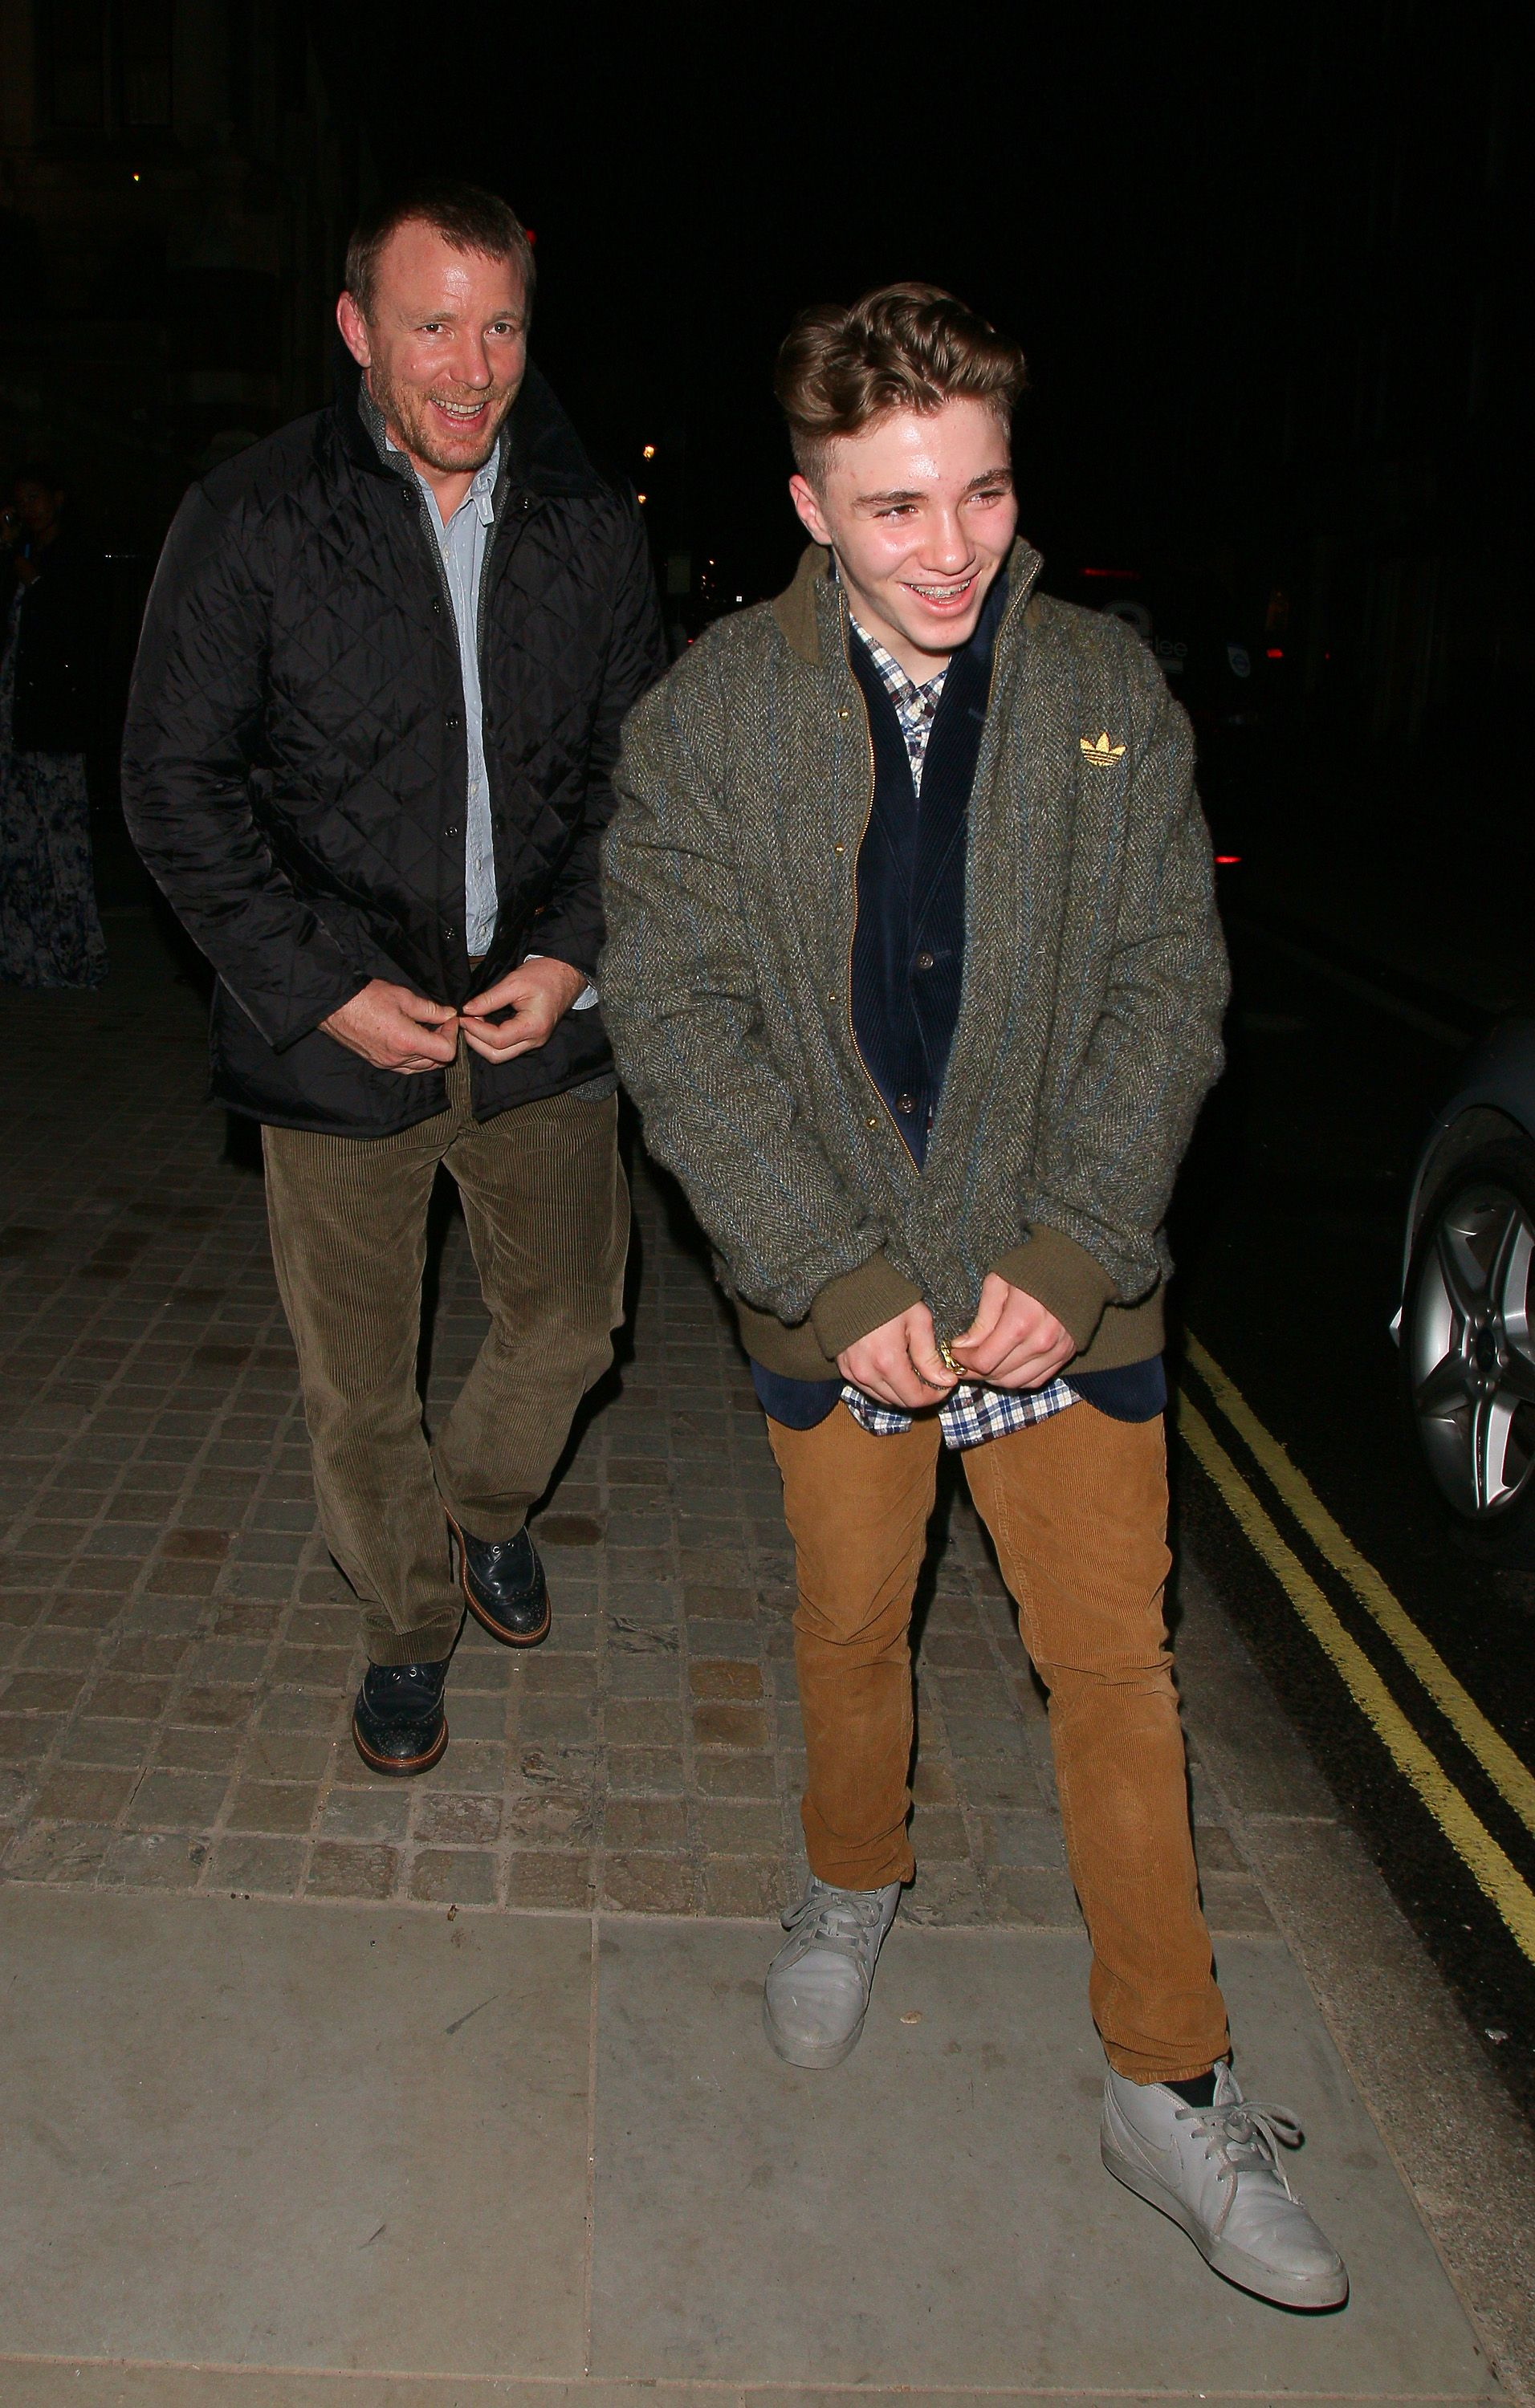 Guy Ritchie and Rocco Ritchie during London Fashion Week in February 2014 in London, England | Source: Getty Images